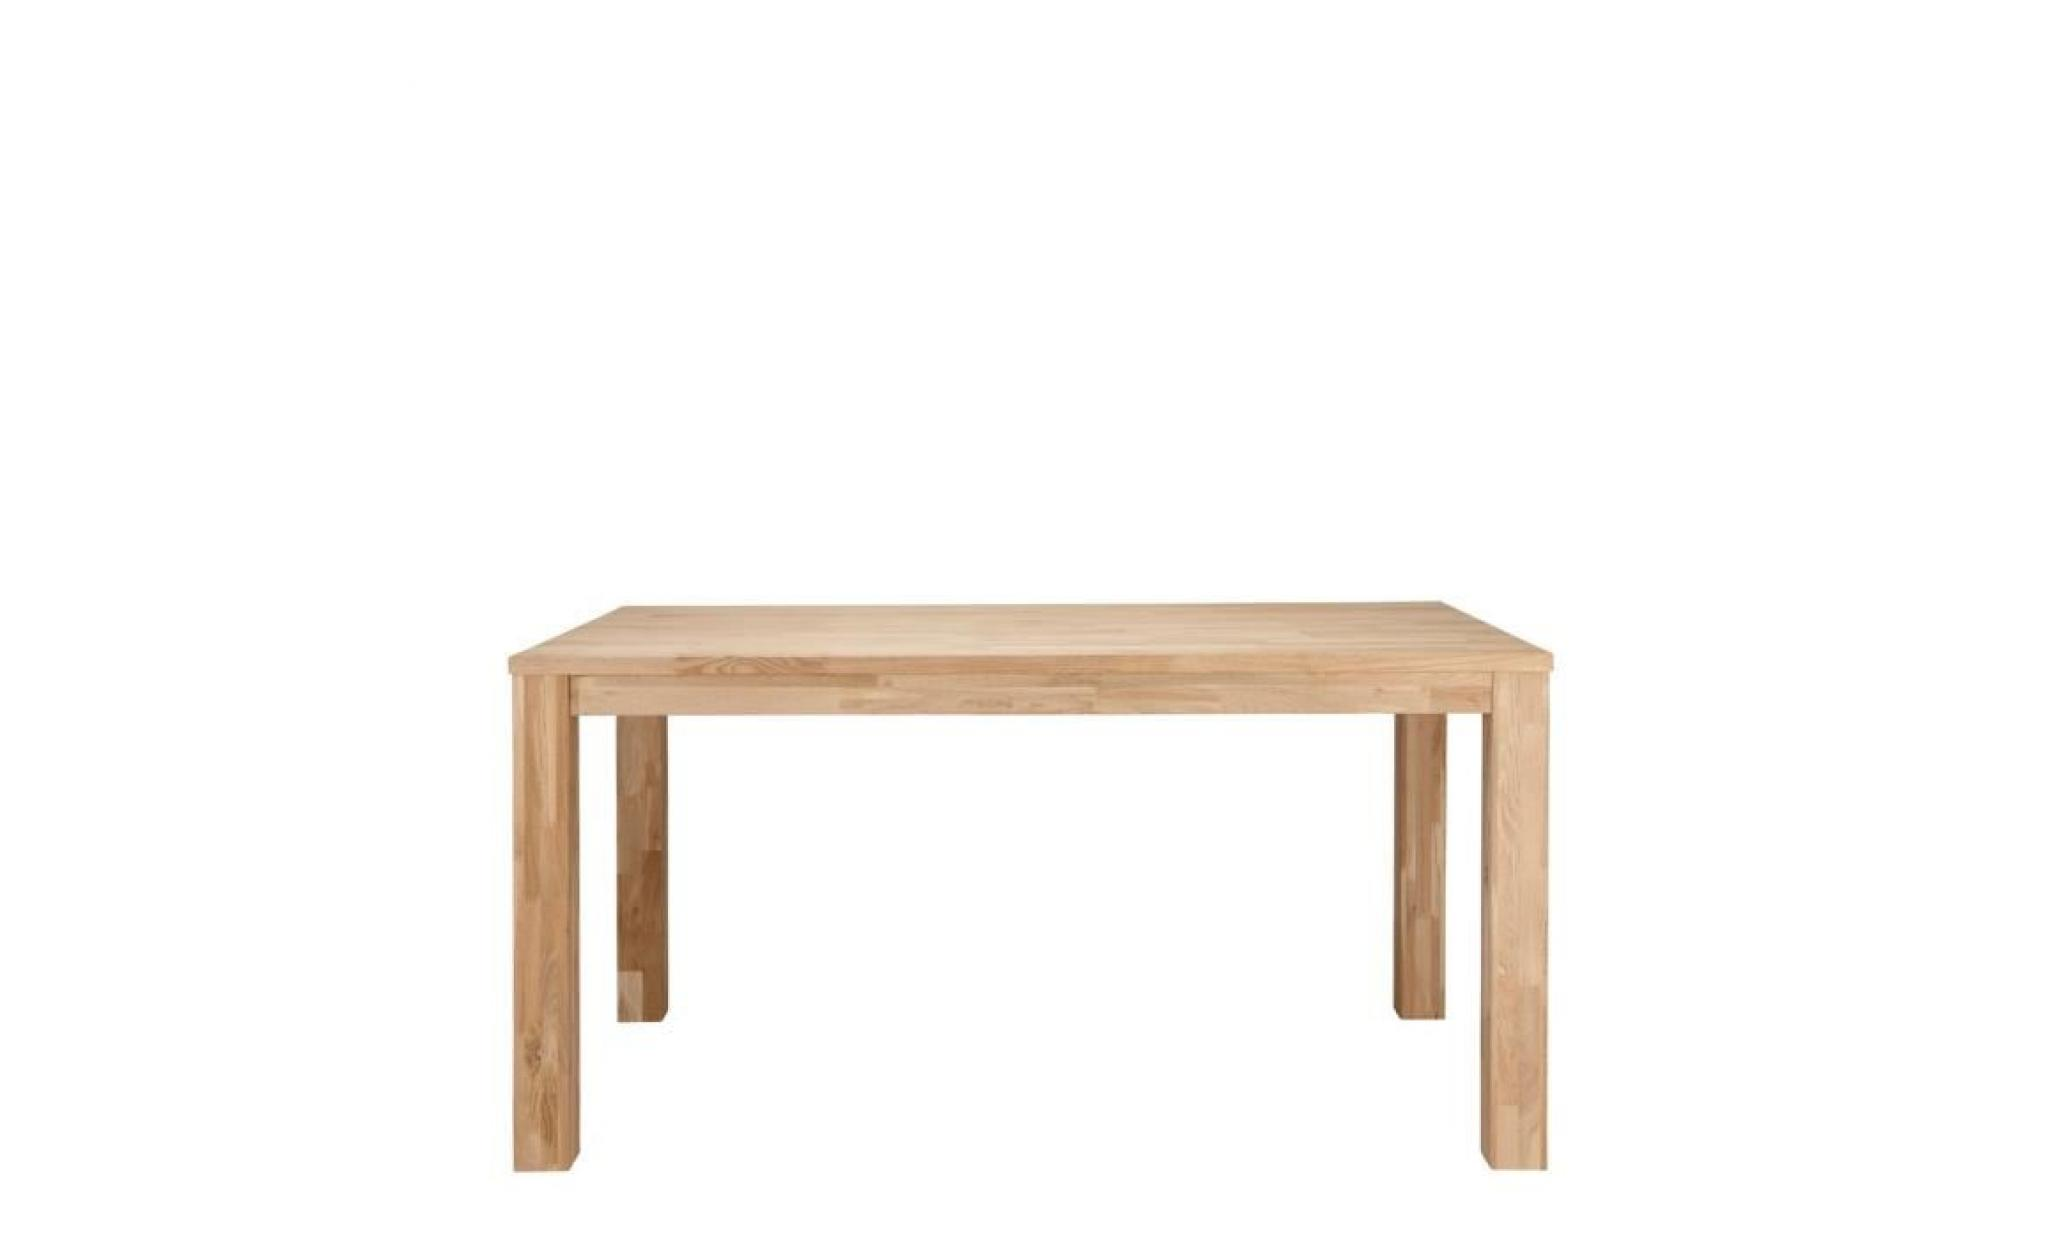 Table manger en ch ne massif brut dutchwood dimensions - Table en chene massif pas cher ...